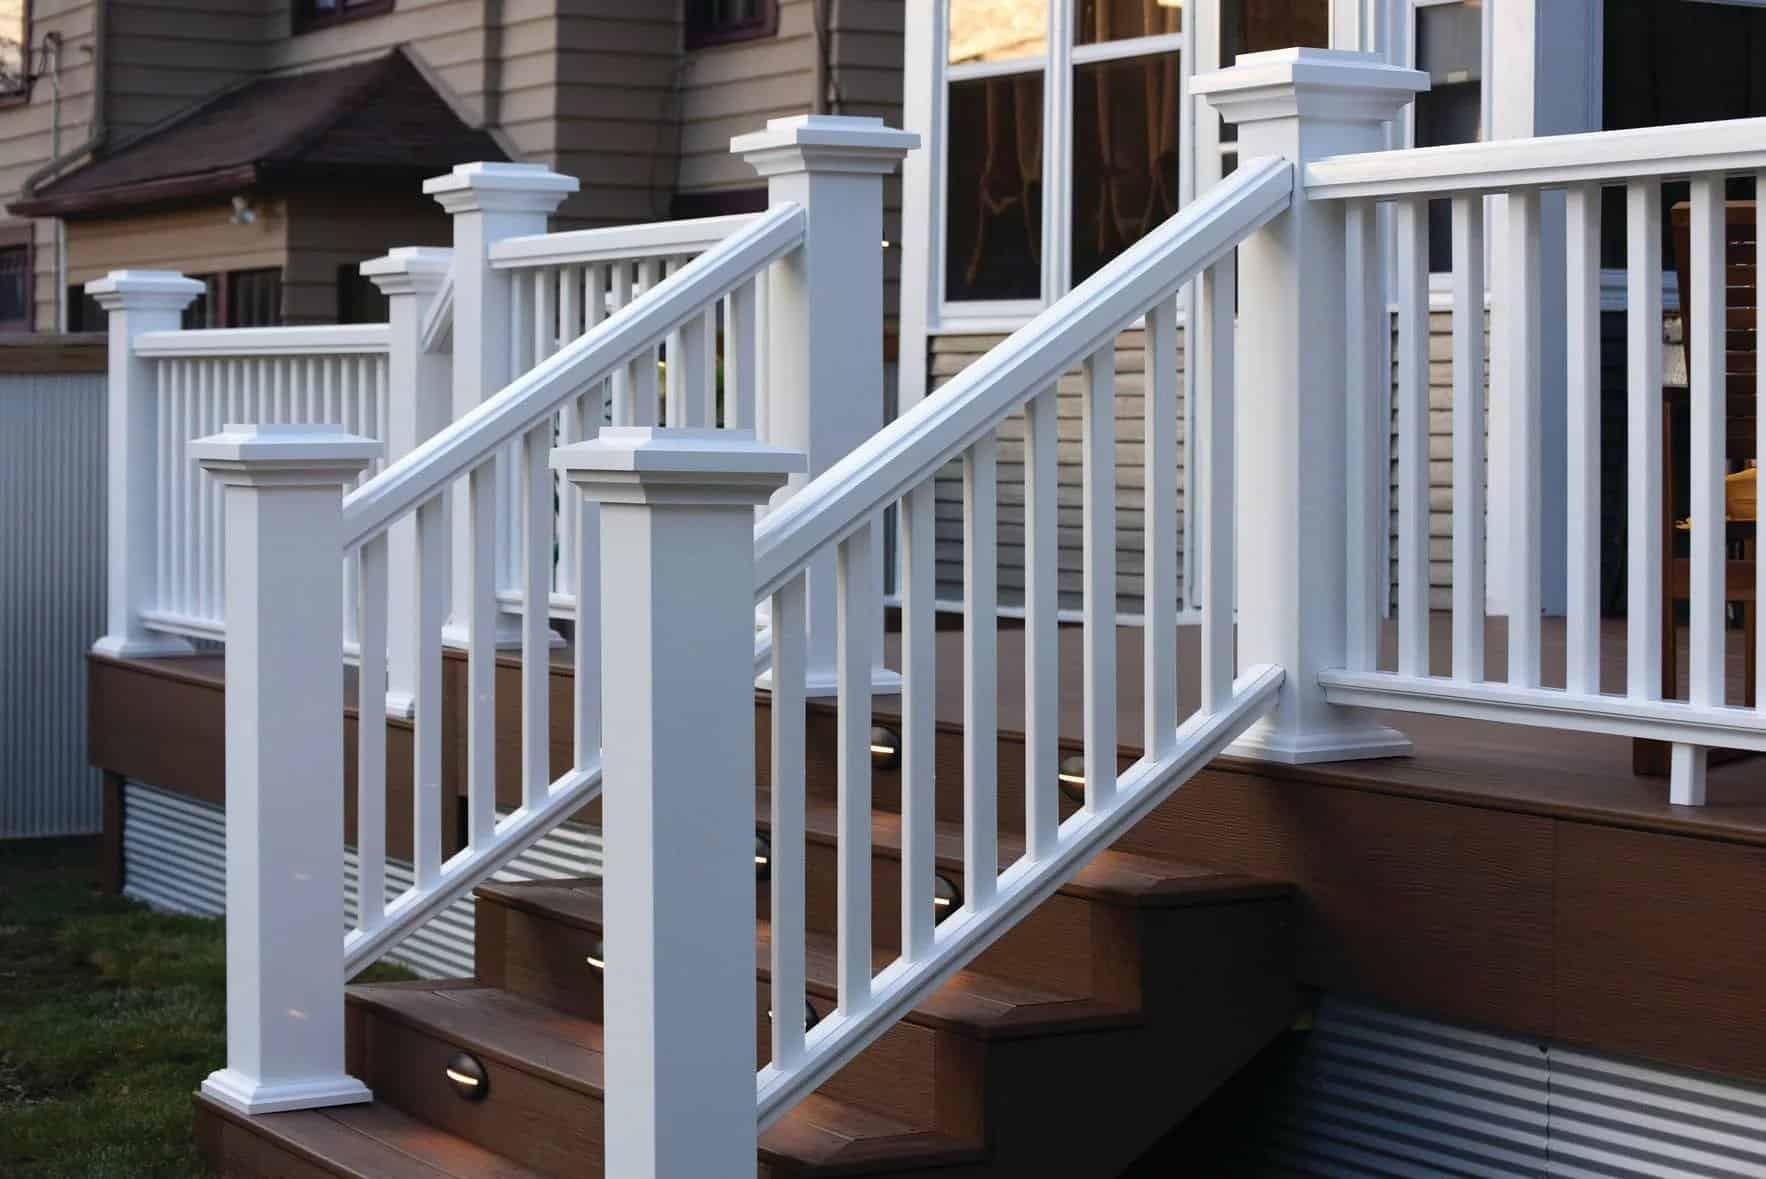 How To Install Timbertech Deck Railing Timbertech | Installing Deck Stair Railing | Outdoor Stair | Baluster | Railing Ideas | Stair Treads | Stair Stringers